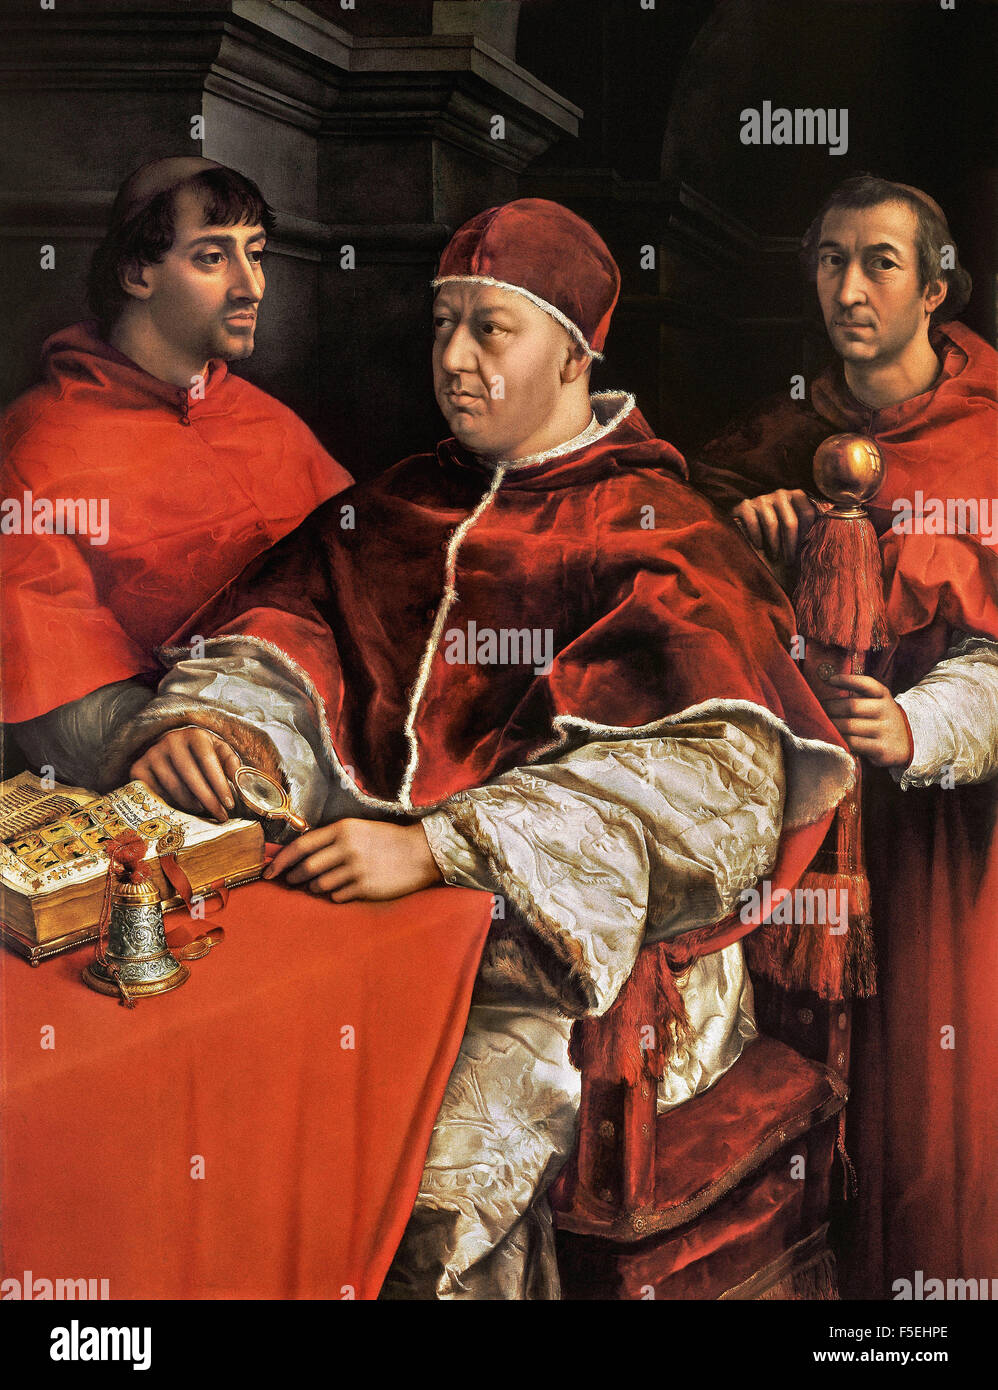 Raffaello Sanzio - Raffaello - Pope Leo X with Cardinals Giulio de' Medici and Luigi de' Rossi Stock Photo